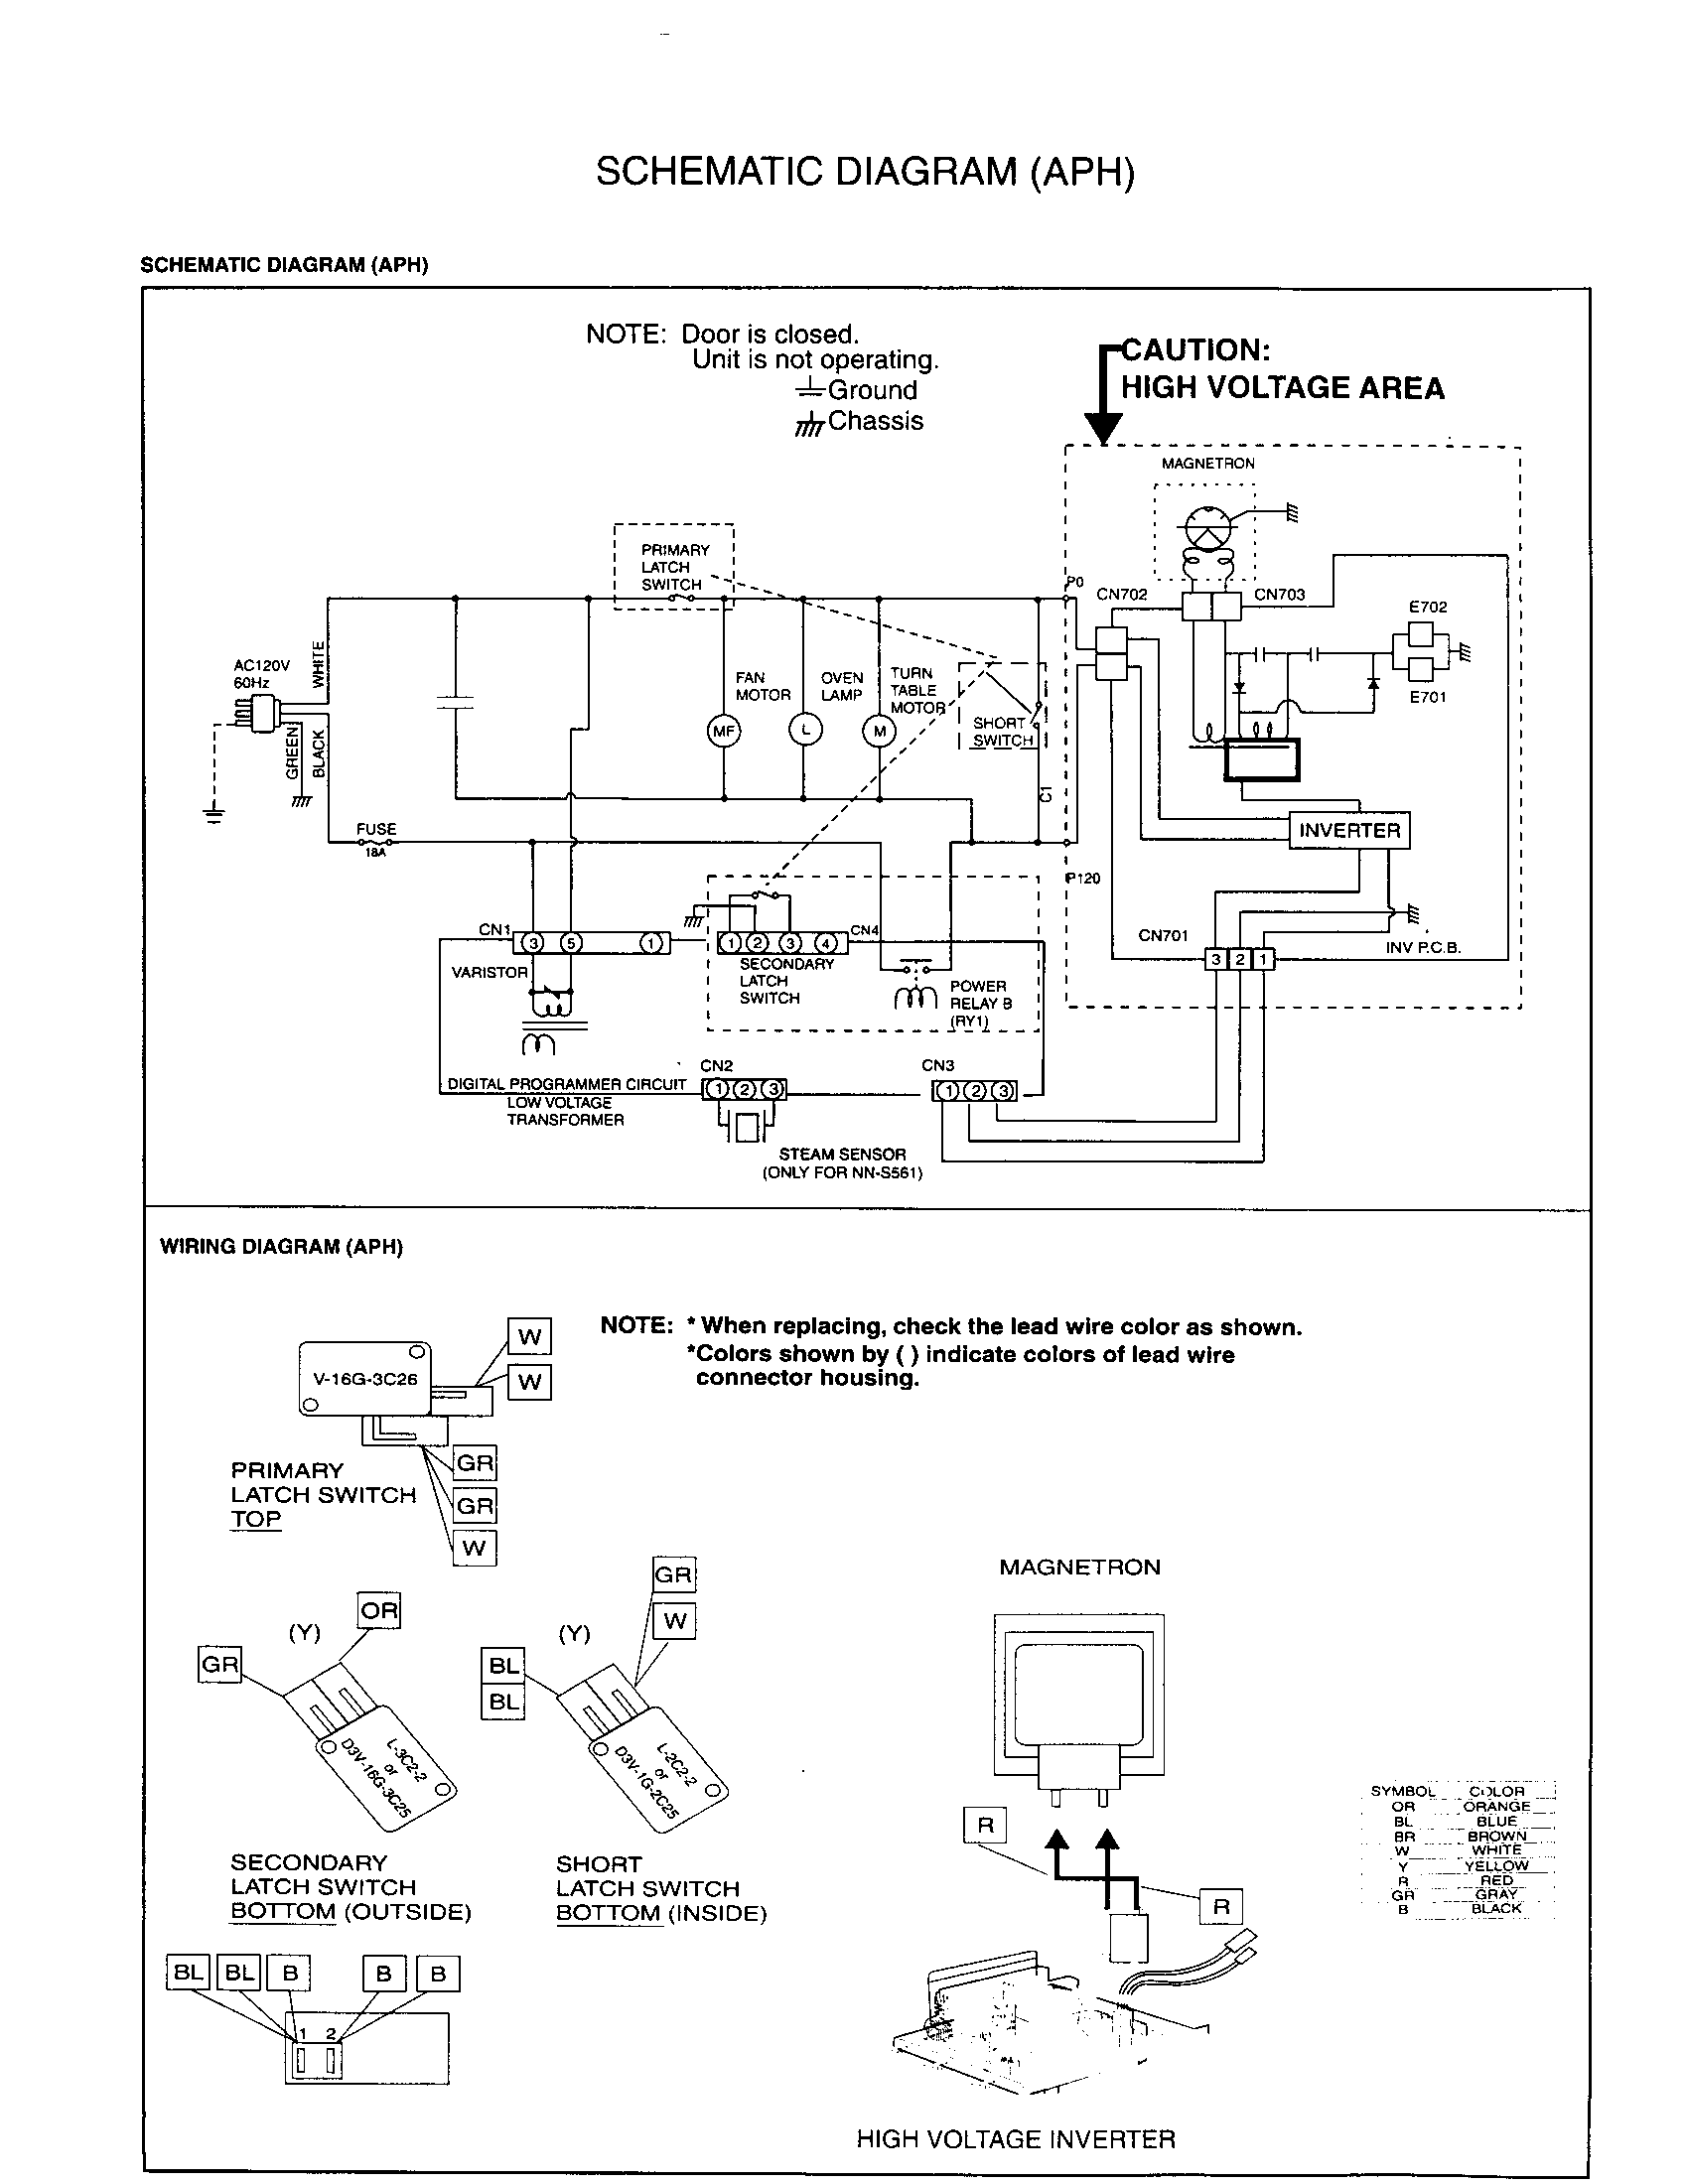 SCHEMATIC DIAGRAM (APH) Diagram & Parts List for Model